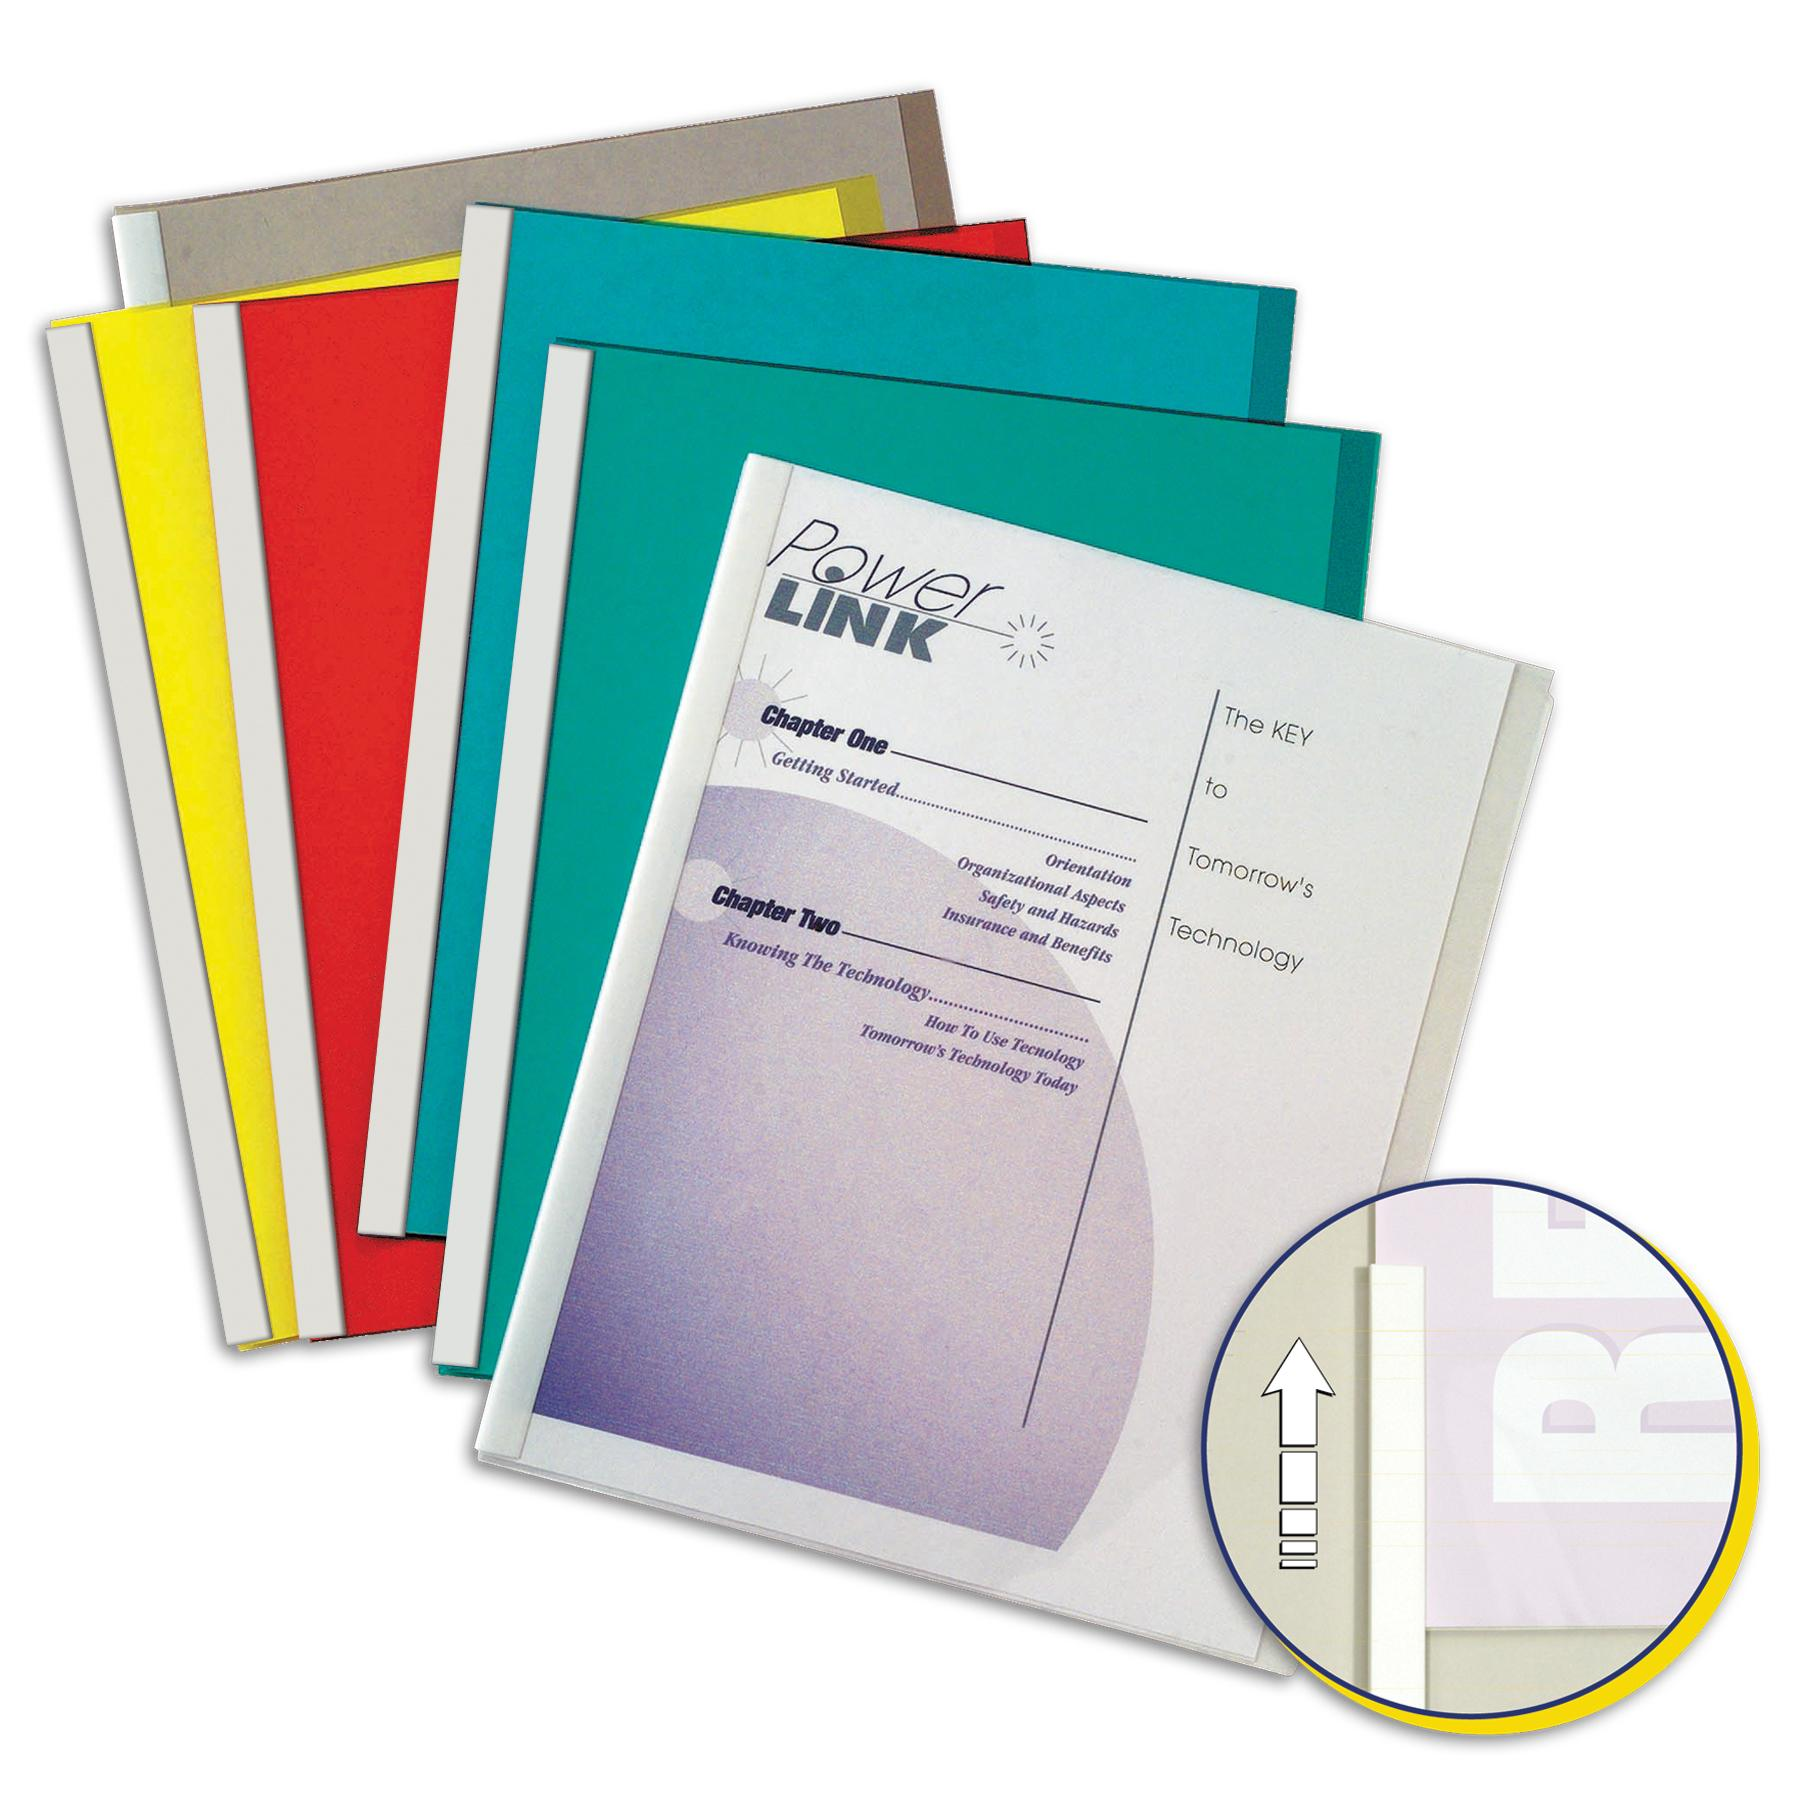 amazon com c line report covers with binding bars assorted color